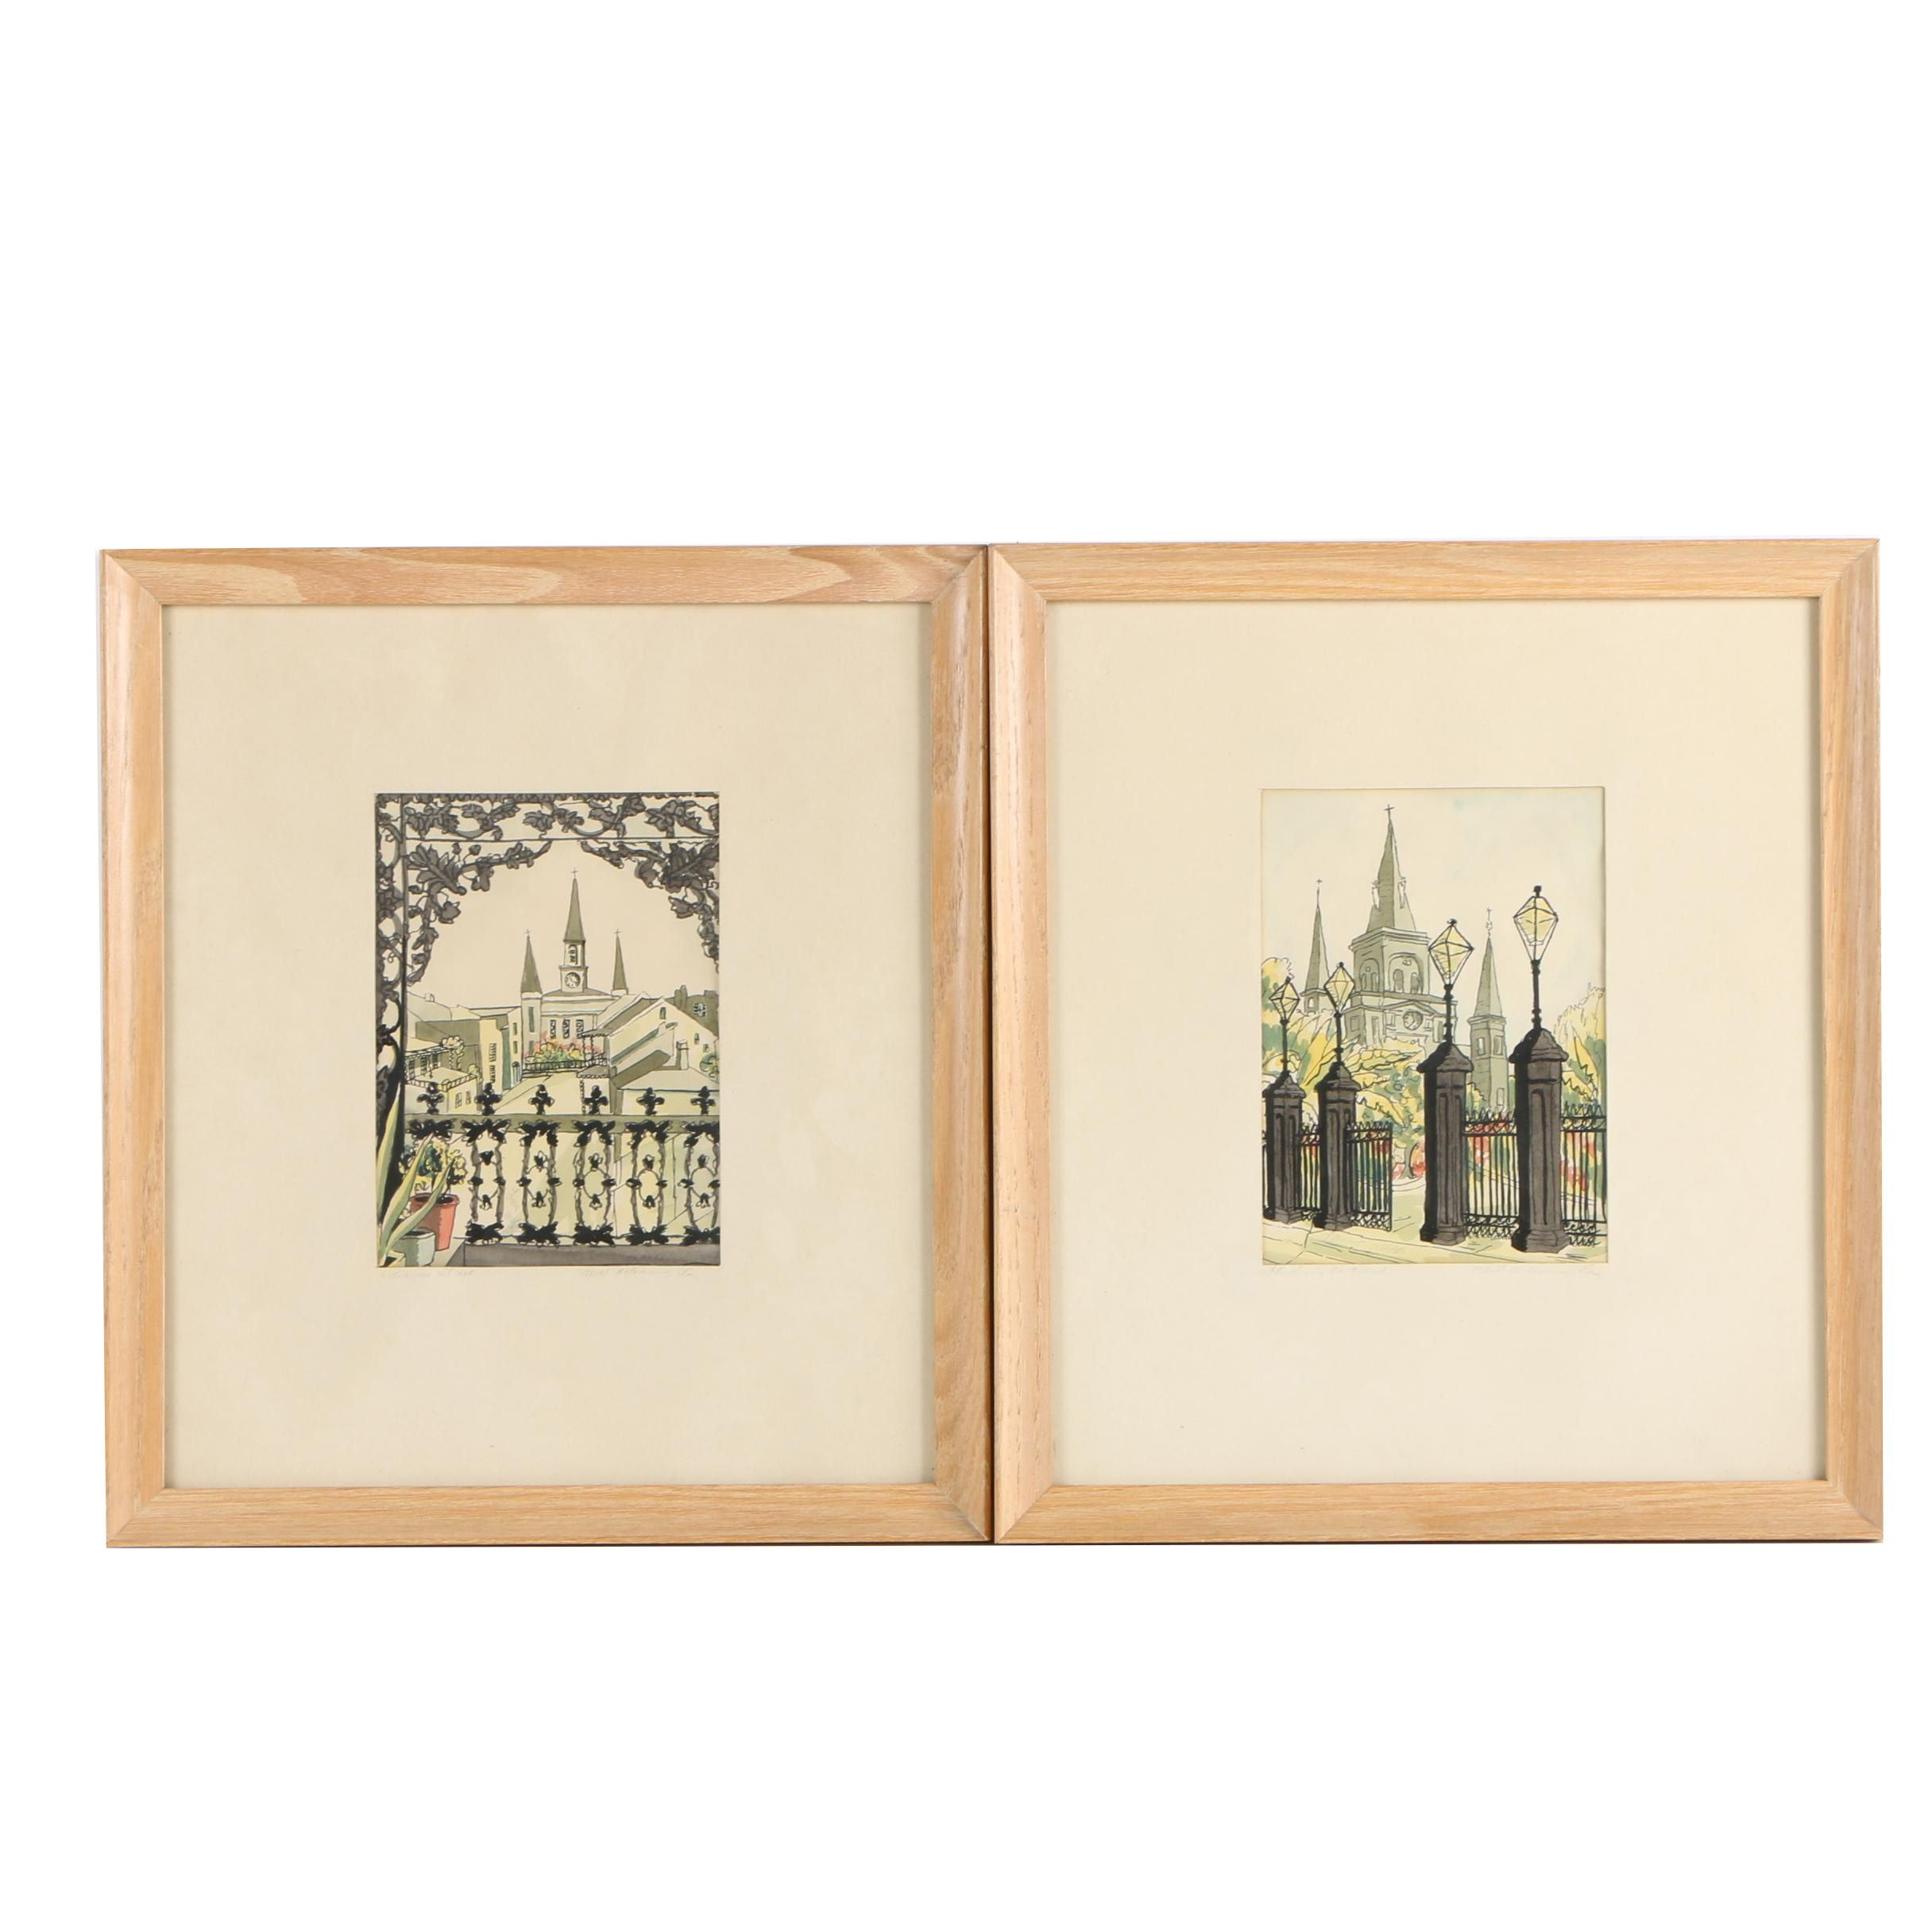 Embellished Lithographs After Louis Webb of New Orleans, Louisiana